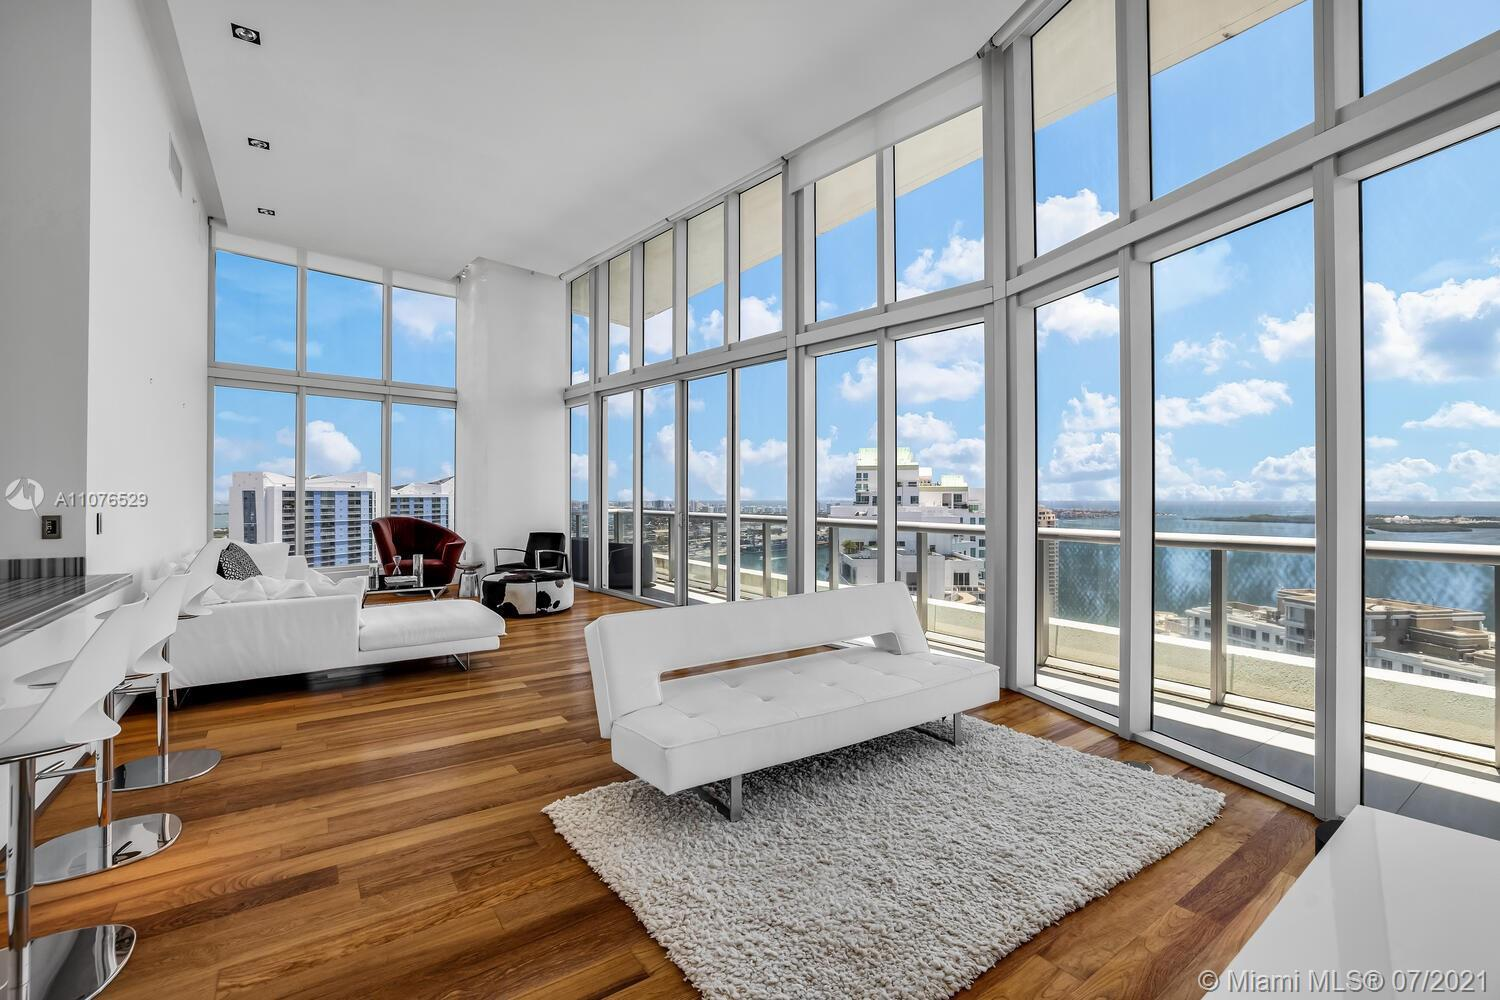 One-of-a-kind, impeccably maintained, 16 Ft. High Ceilings greet you in this light and bright 3-bed,